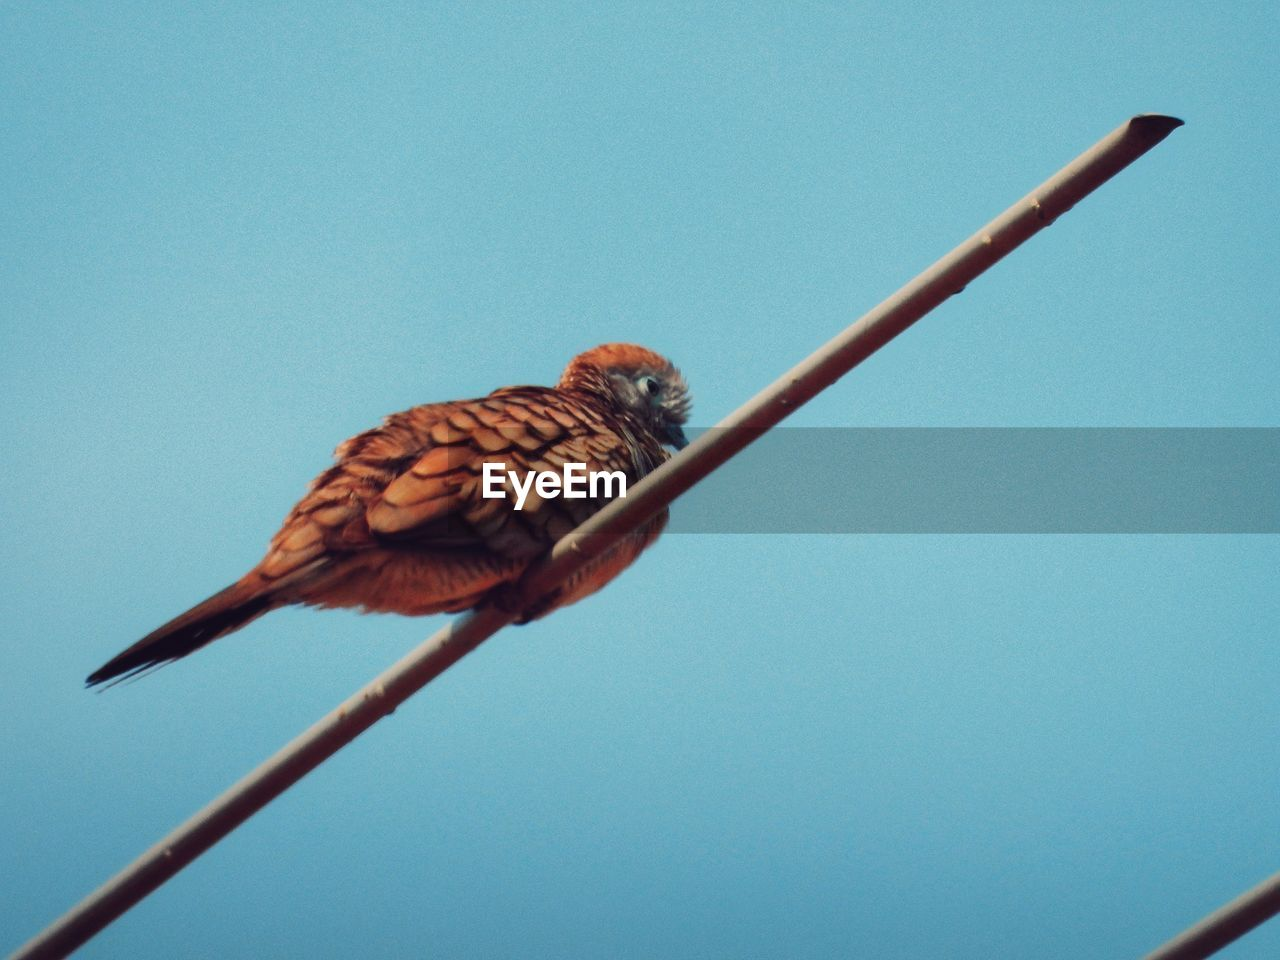 animal wildlife, animal, animals in the wild, animal themes, bird, one animal, vertebrate, sky, clear sky, low angle view, blue, no people, perching, nature, copy space, day, close-up, cable, full length, colored background, blue background